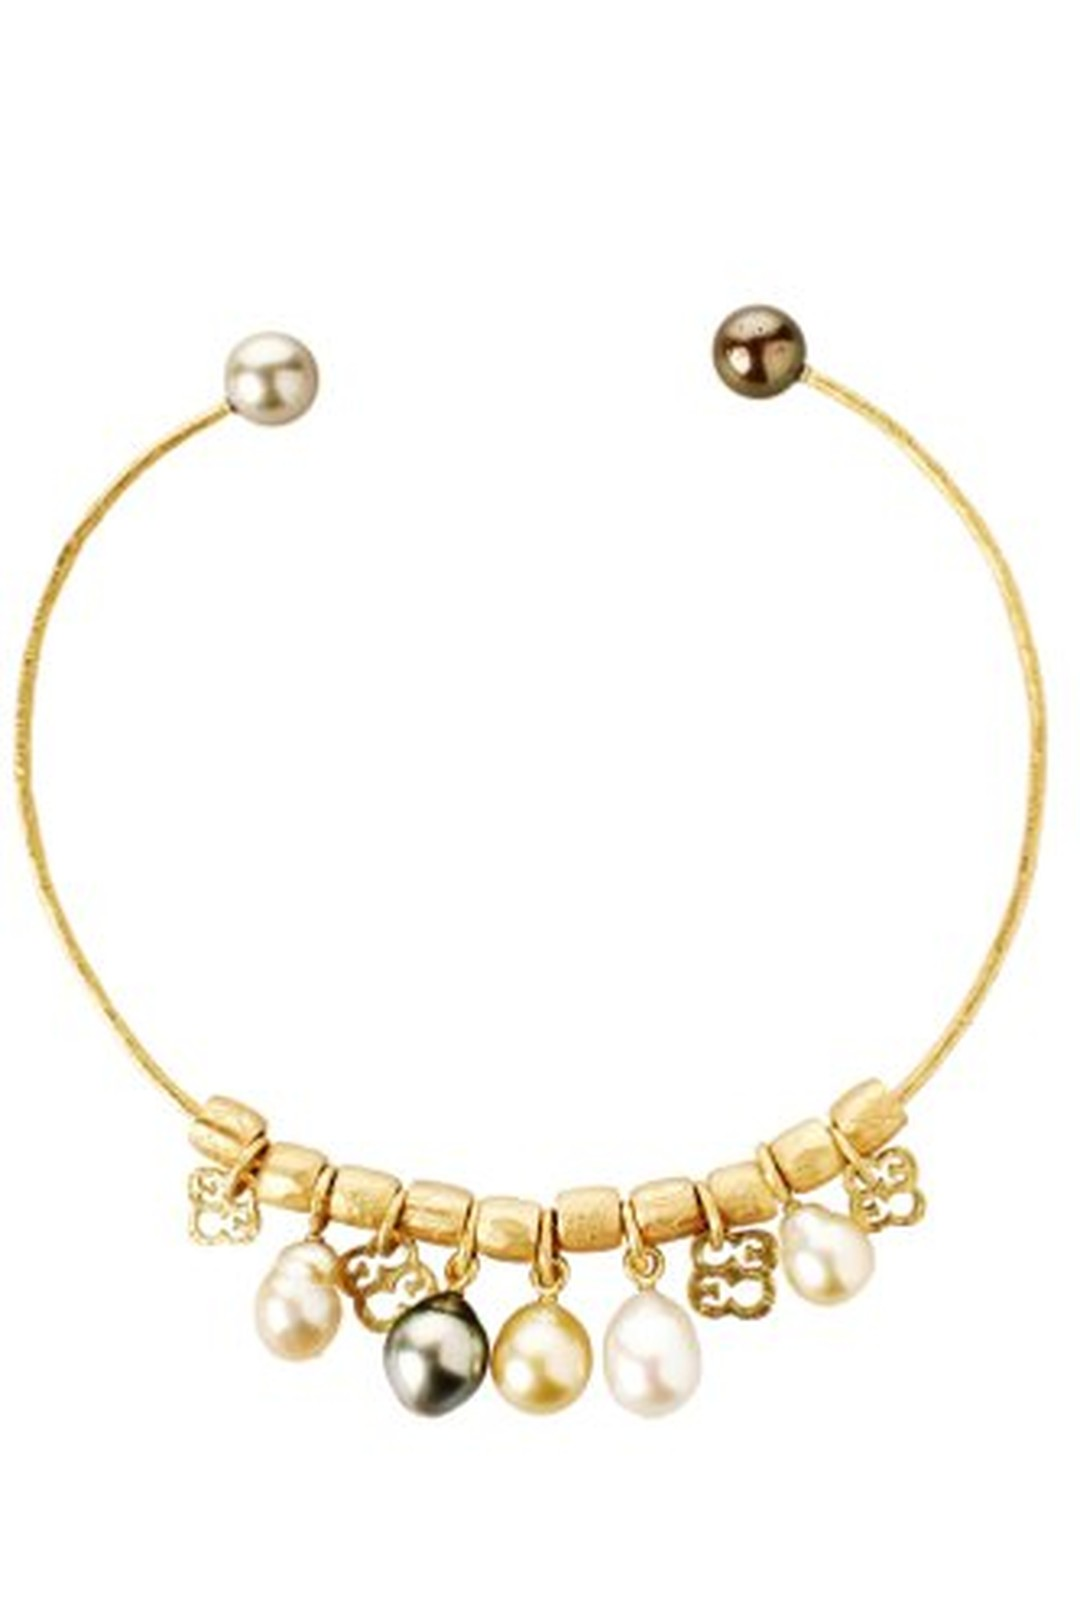 16) Gold choker with charms and pearls.jpg